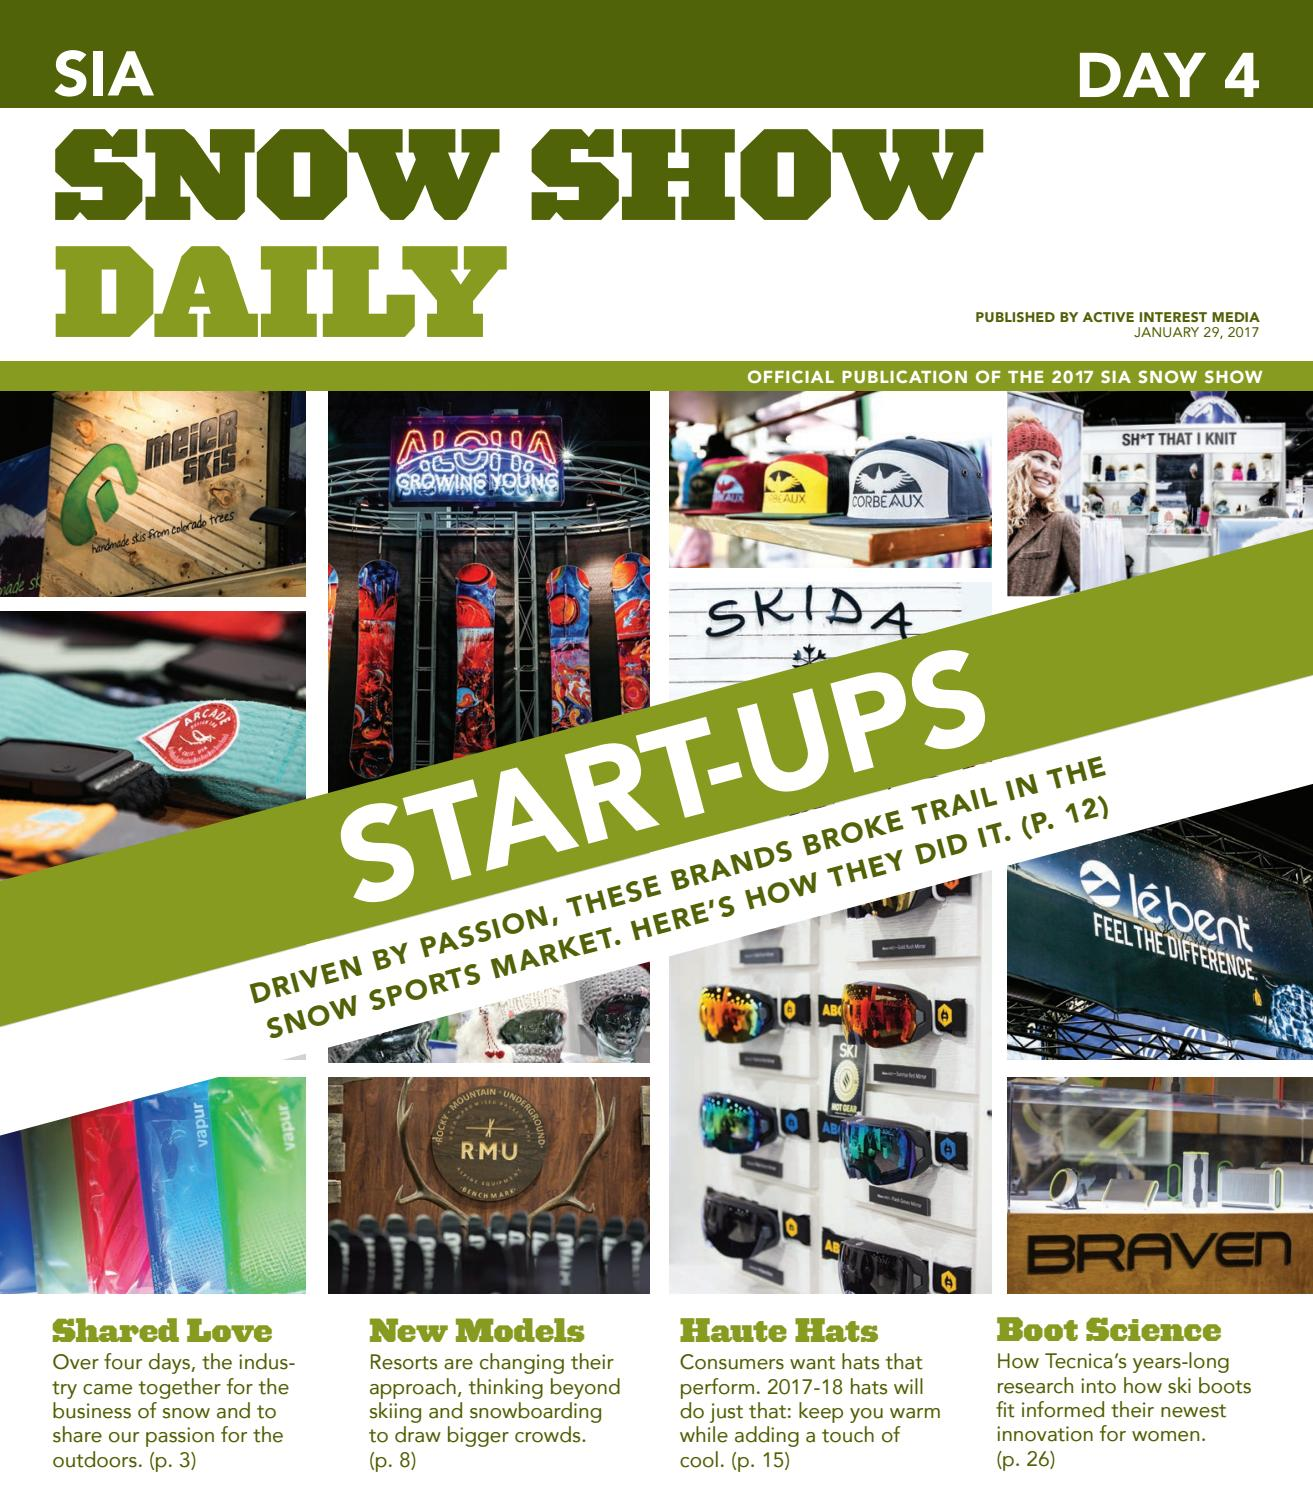 64f87593b54 SIA Snow Show 2017 Day 4 by Active Interest Media-Boulder - issuu